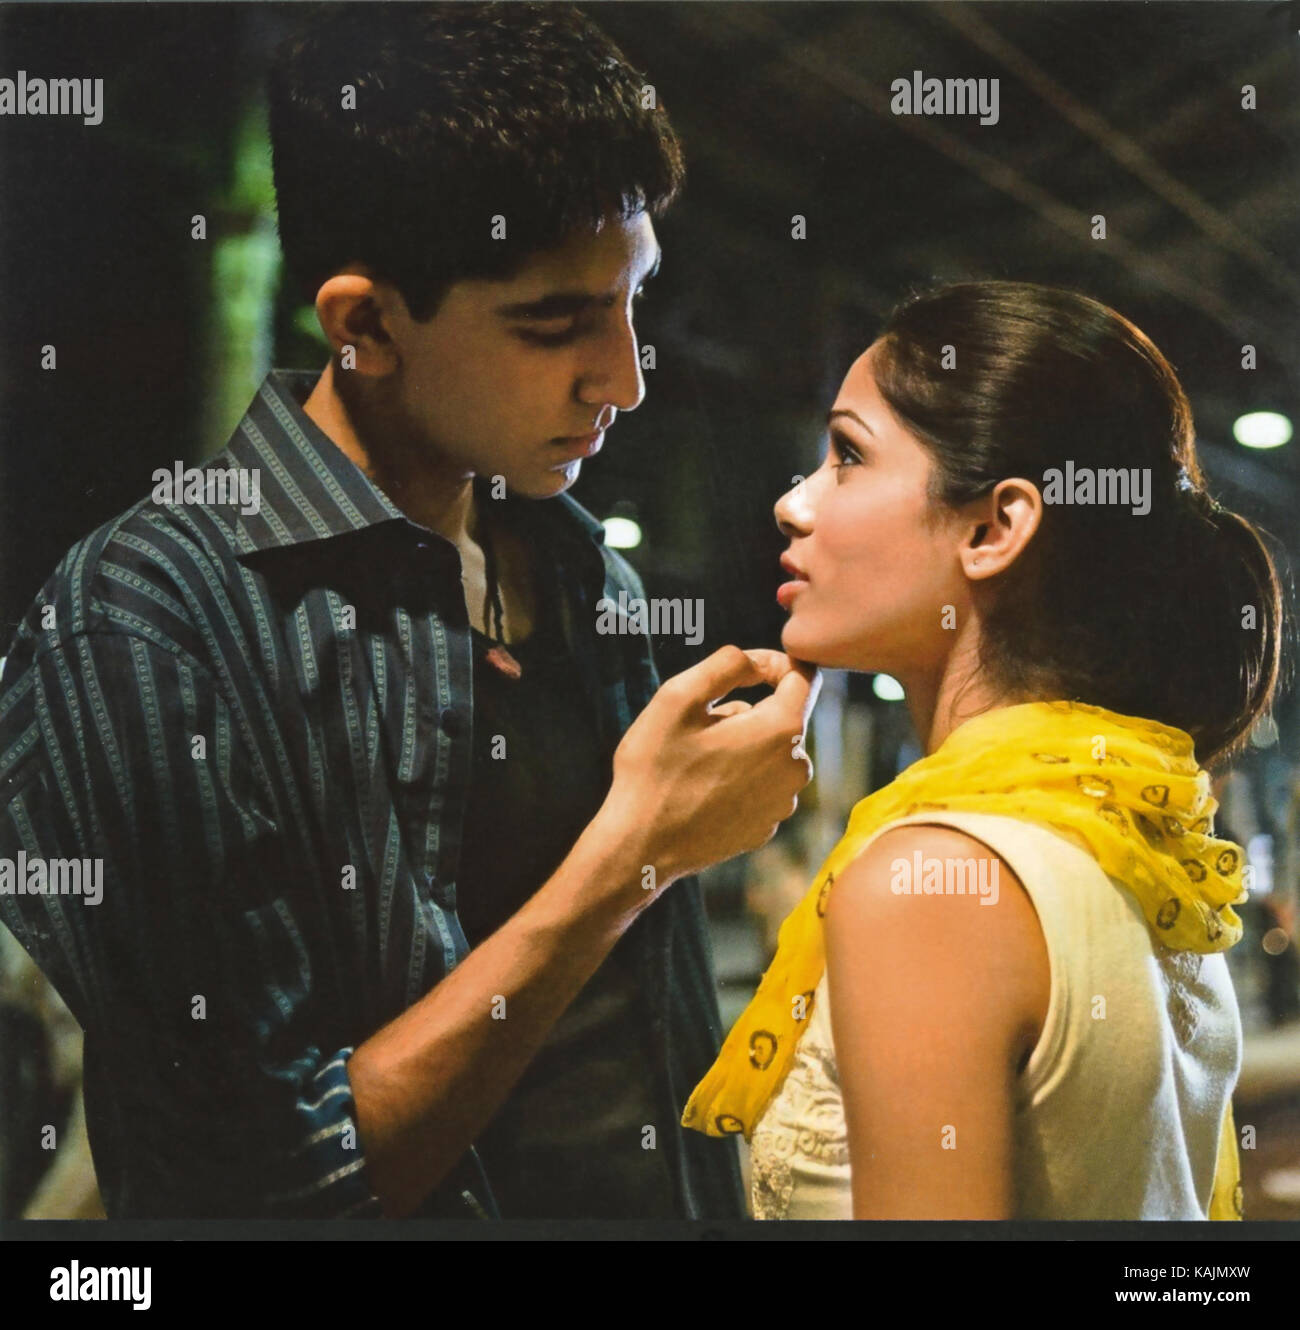 SLUMDOG MILLIONAIRE 2008 Warner Bros film with Dev Patel and Frieda Pinto - Stock Image